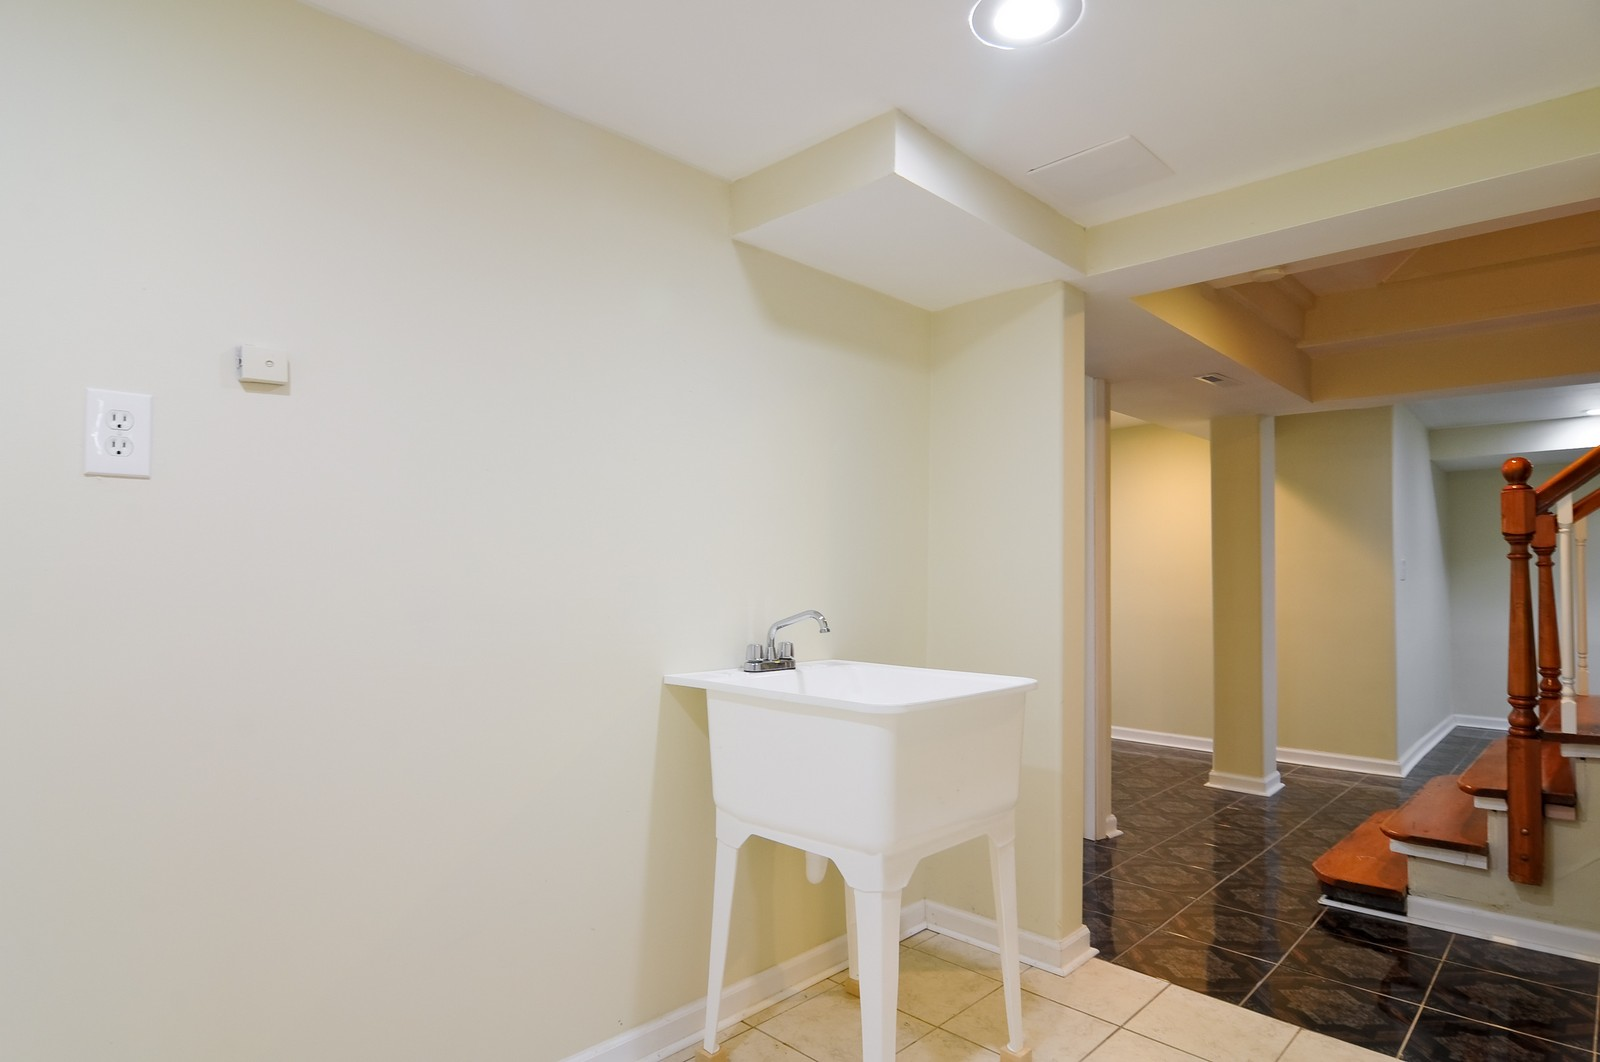 Real Estate Photography - 1516 N Jackson St, Waukegan, IL, 60085 - Laundry Room